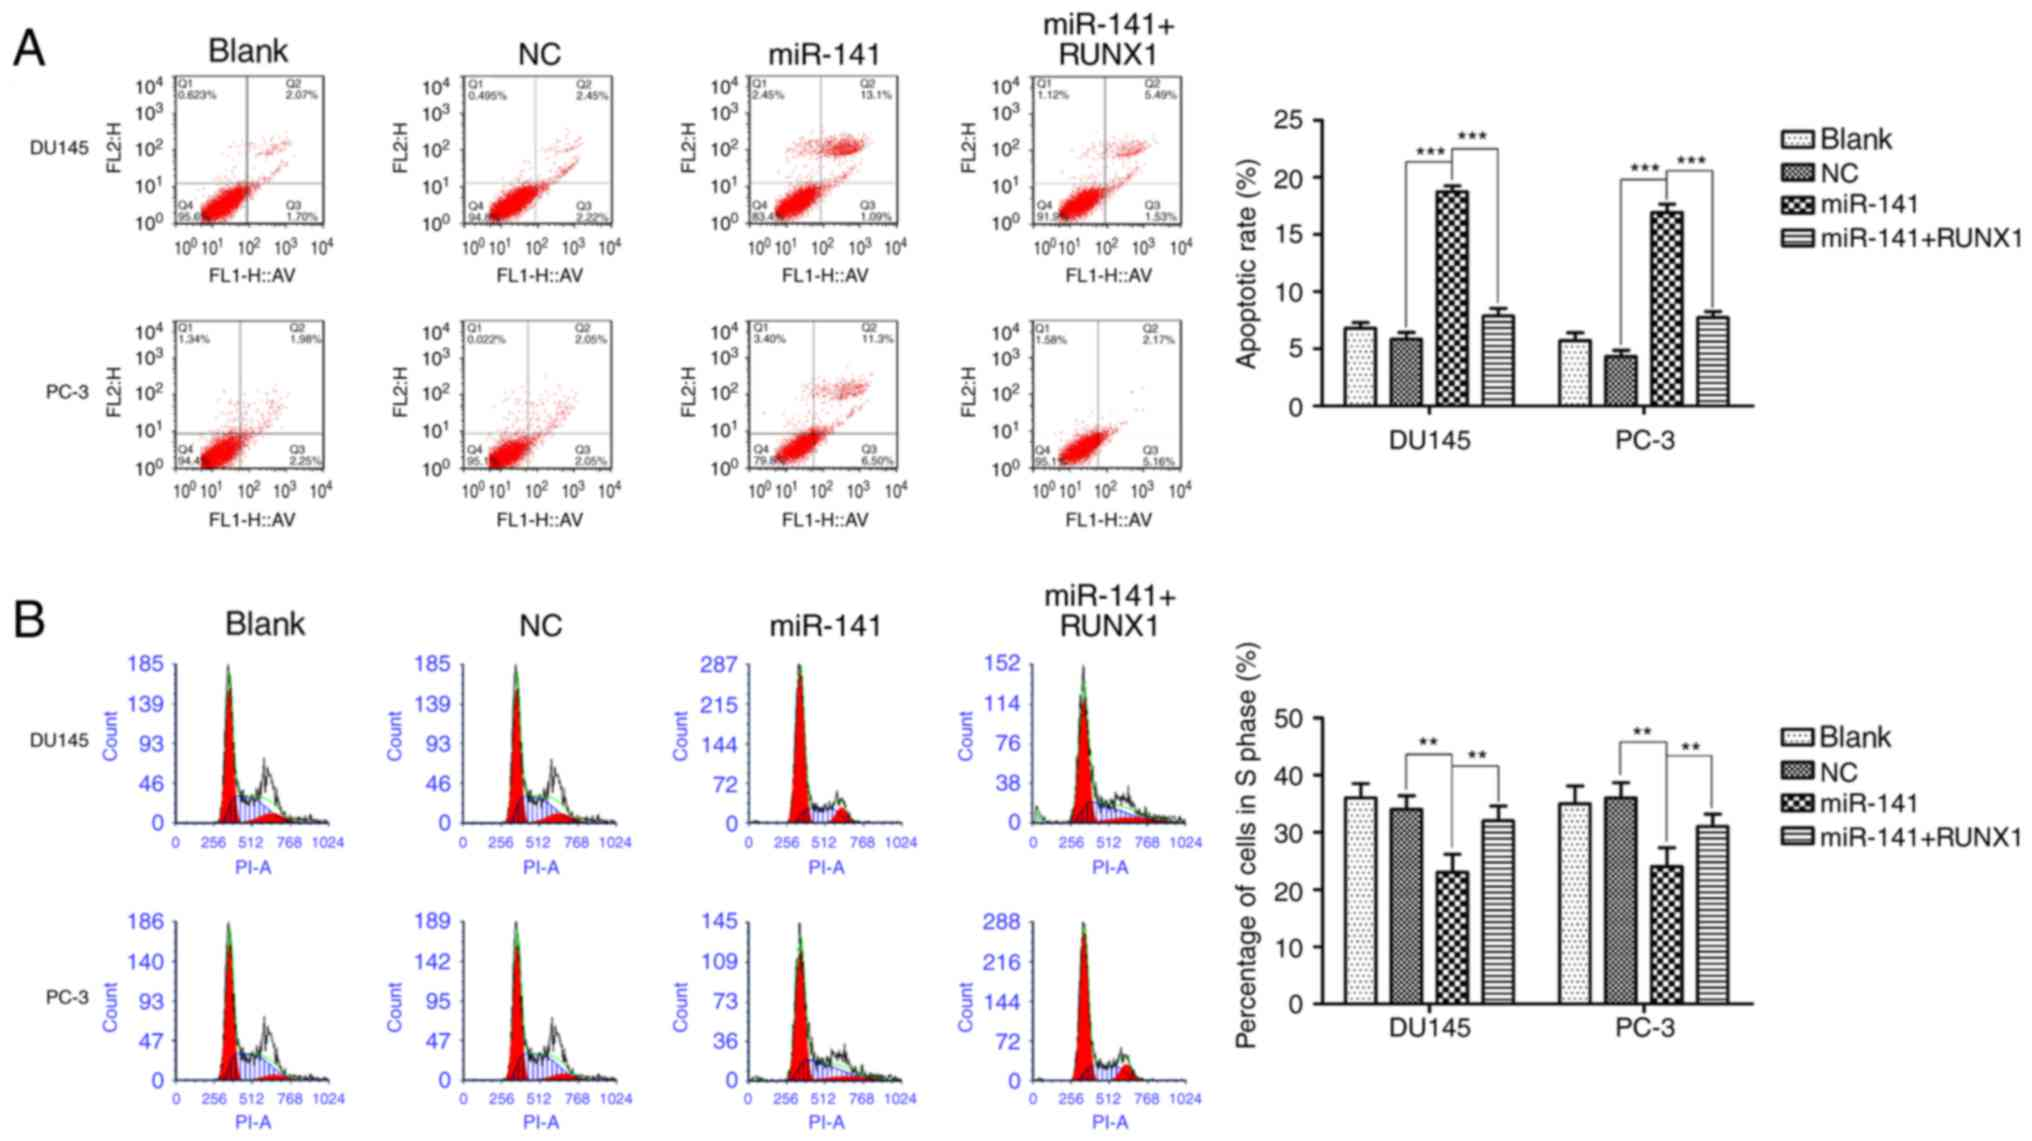 miR-141 inhibits prostatic cancer cell proliferation and